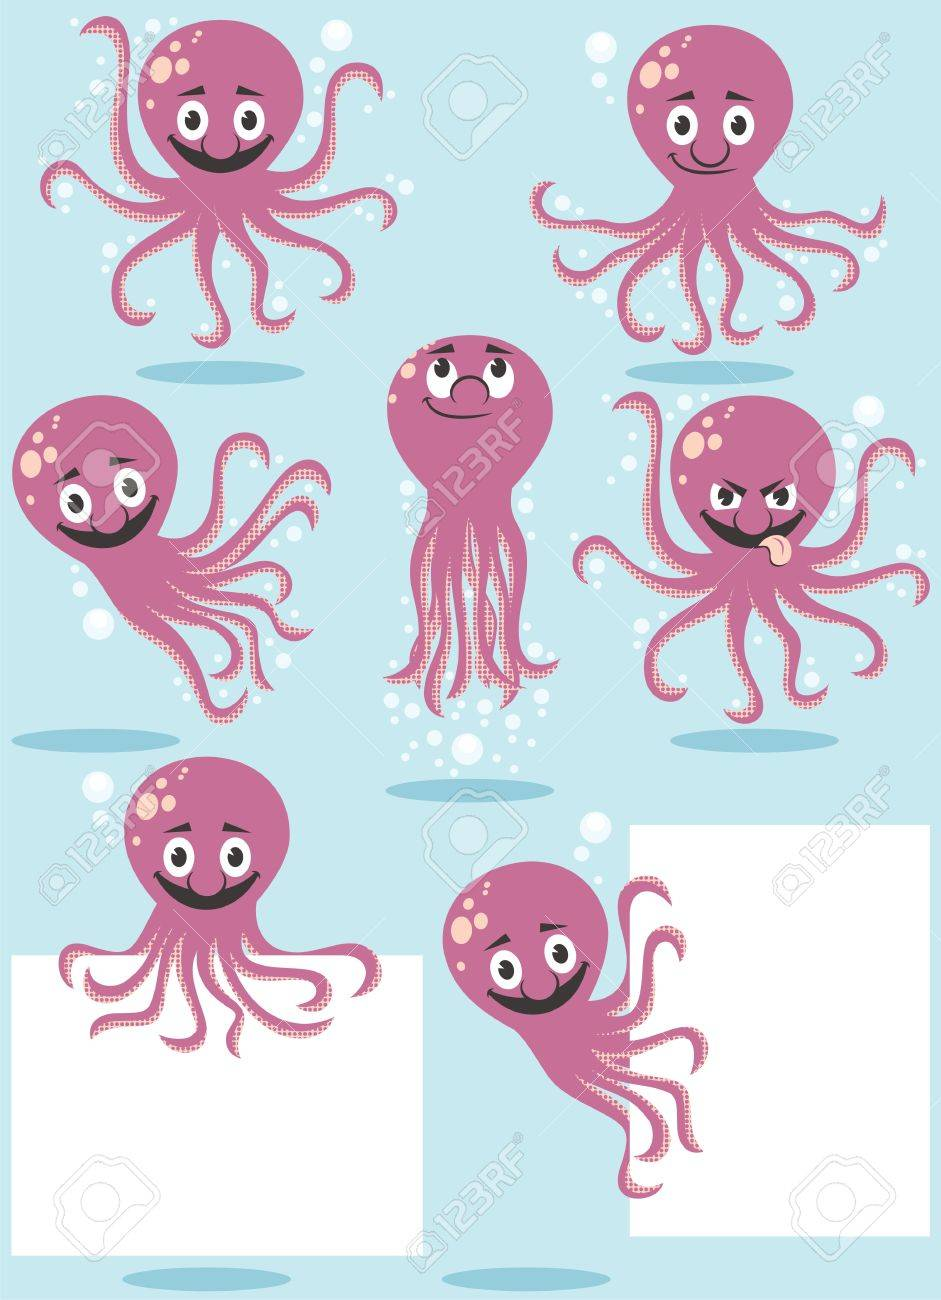 Cartoon octopus in 7 poses  No transparency and gradients used Stock Vector - 18305814